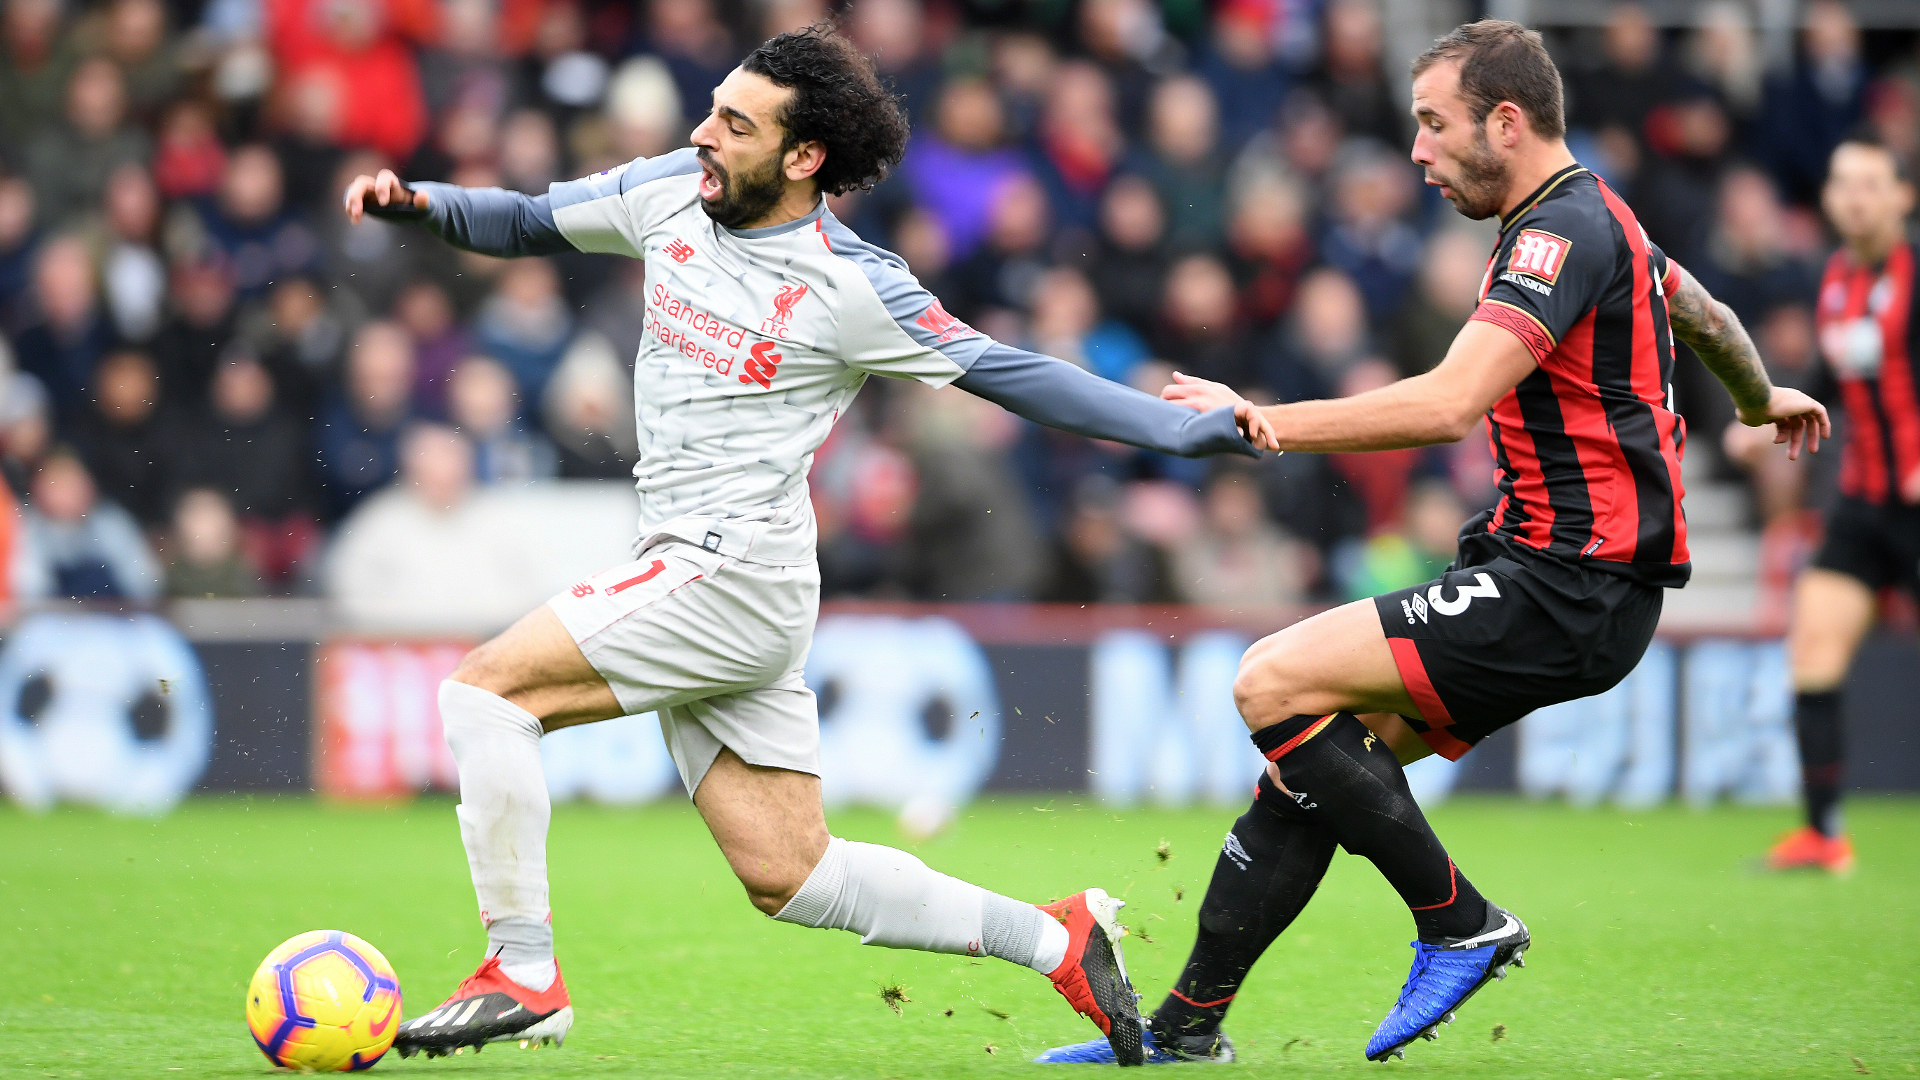 Bournemouth 0, Liverpool 4: Salah grabs hat trick for Reds